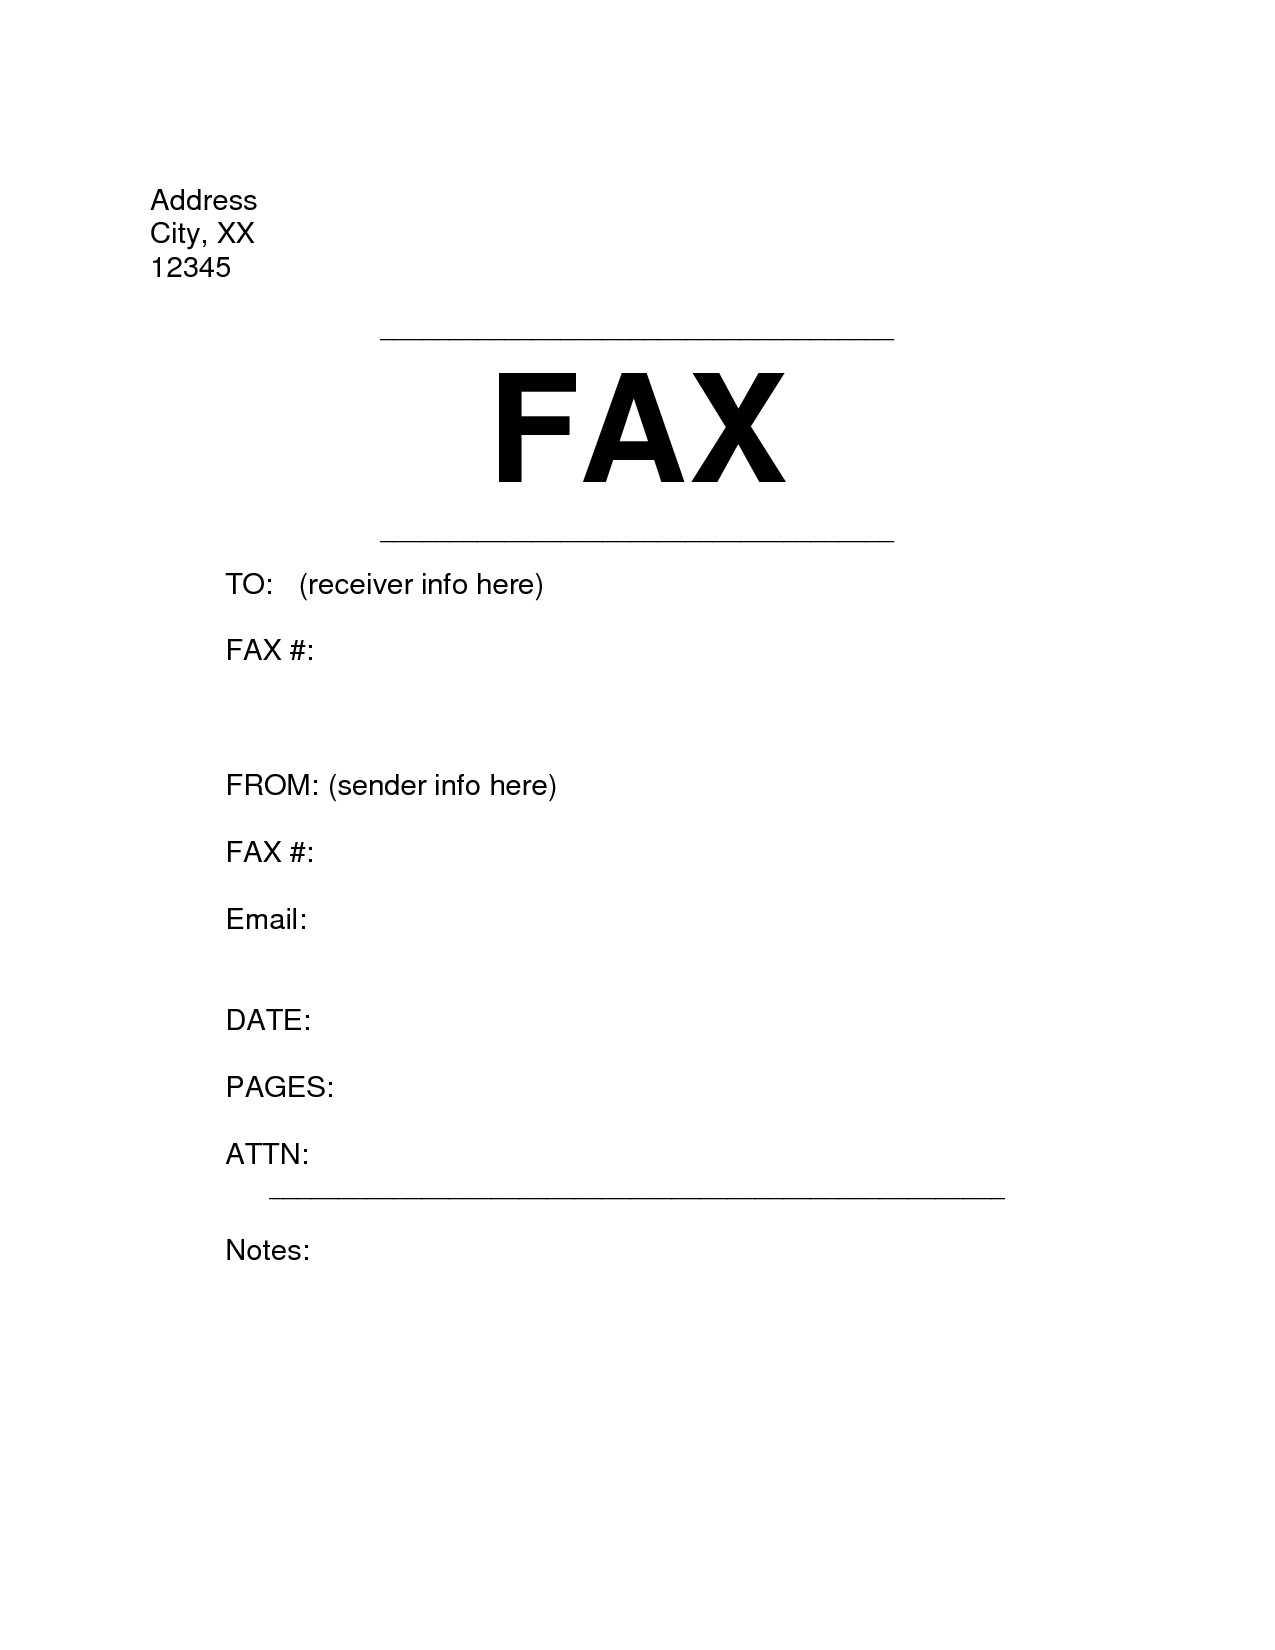 Microsoft word fax cover letter template examples letter cover microsoft word fax cover letter template fax cover sheet template word 2010 with resume template spiritdancerdesigns Gallery